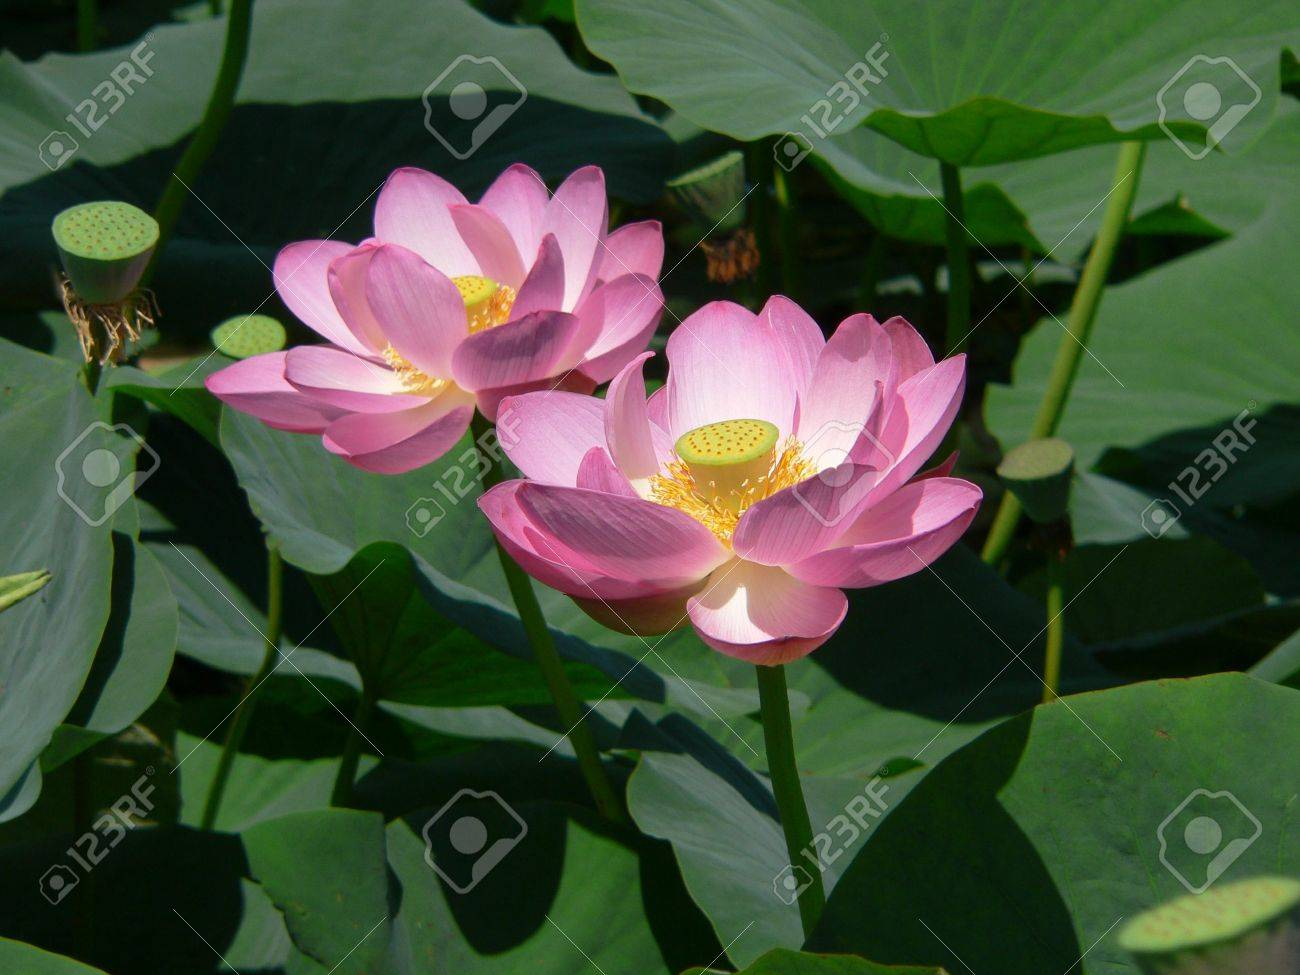 two lotuses stock photo, picture and royalty free image. image, Beautiful flower